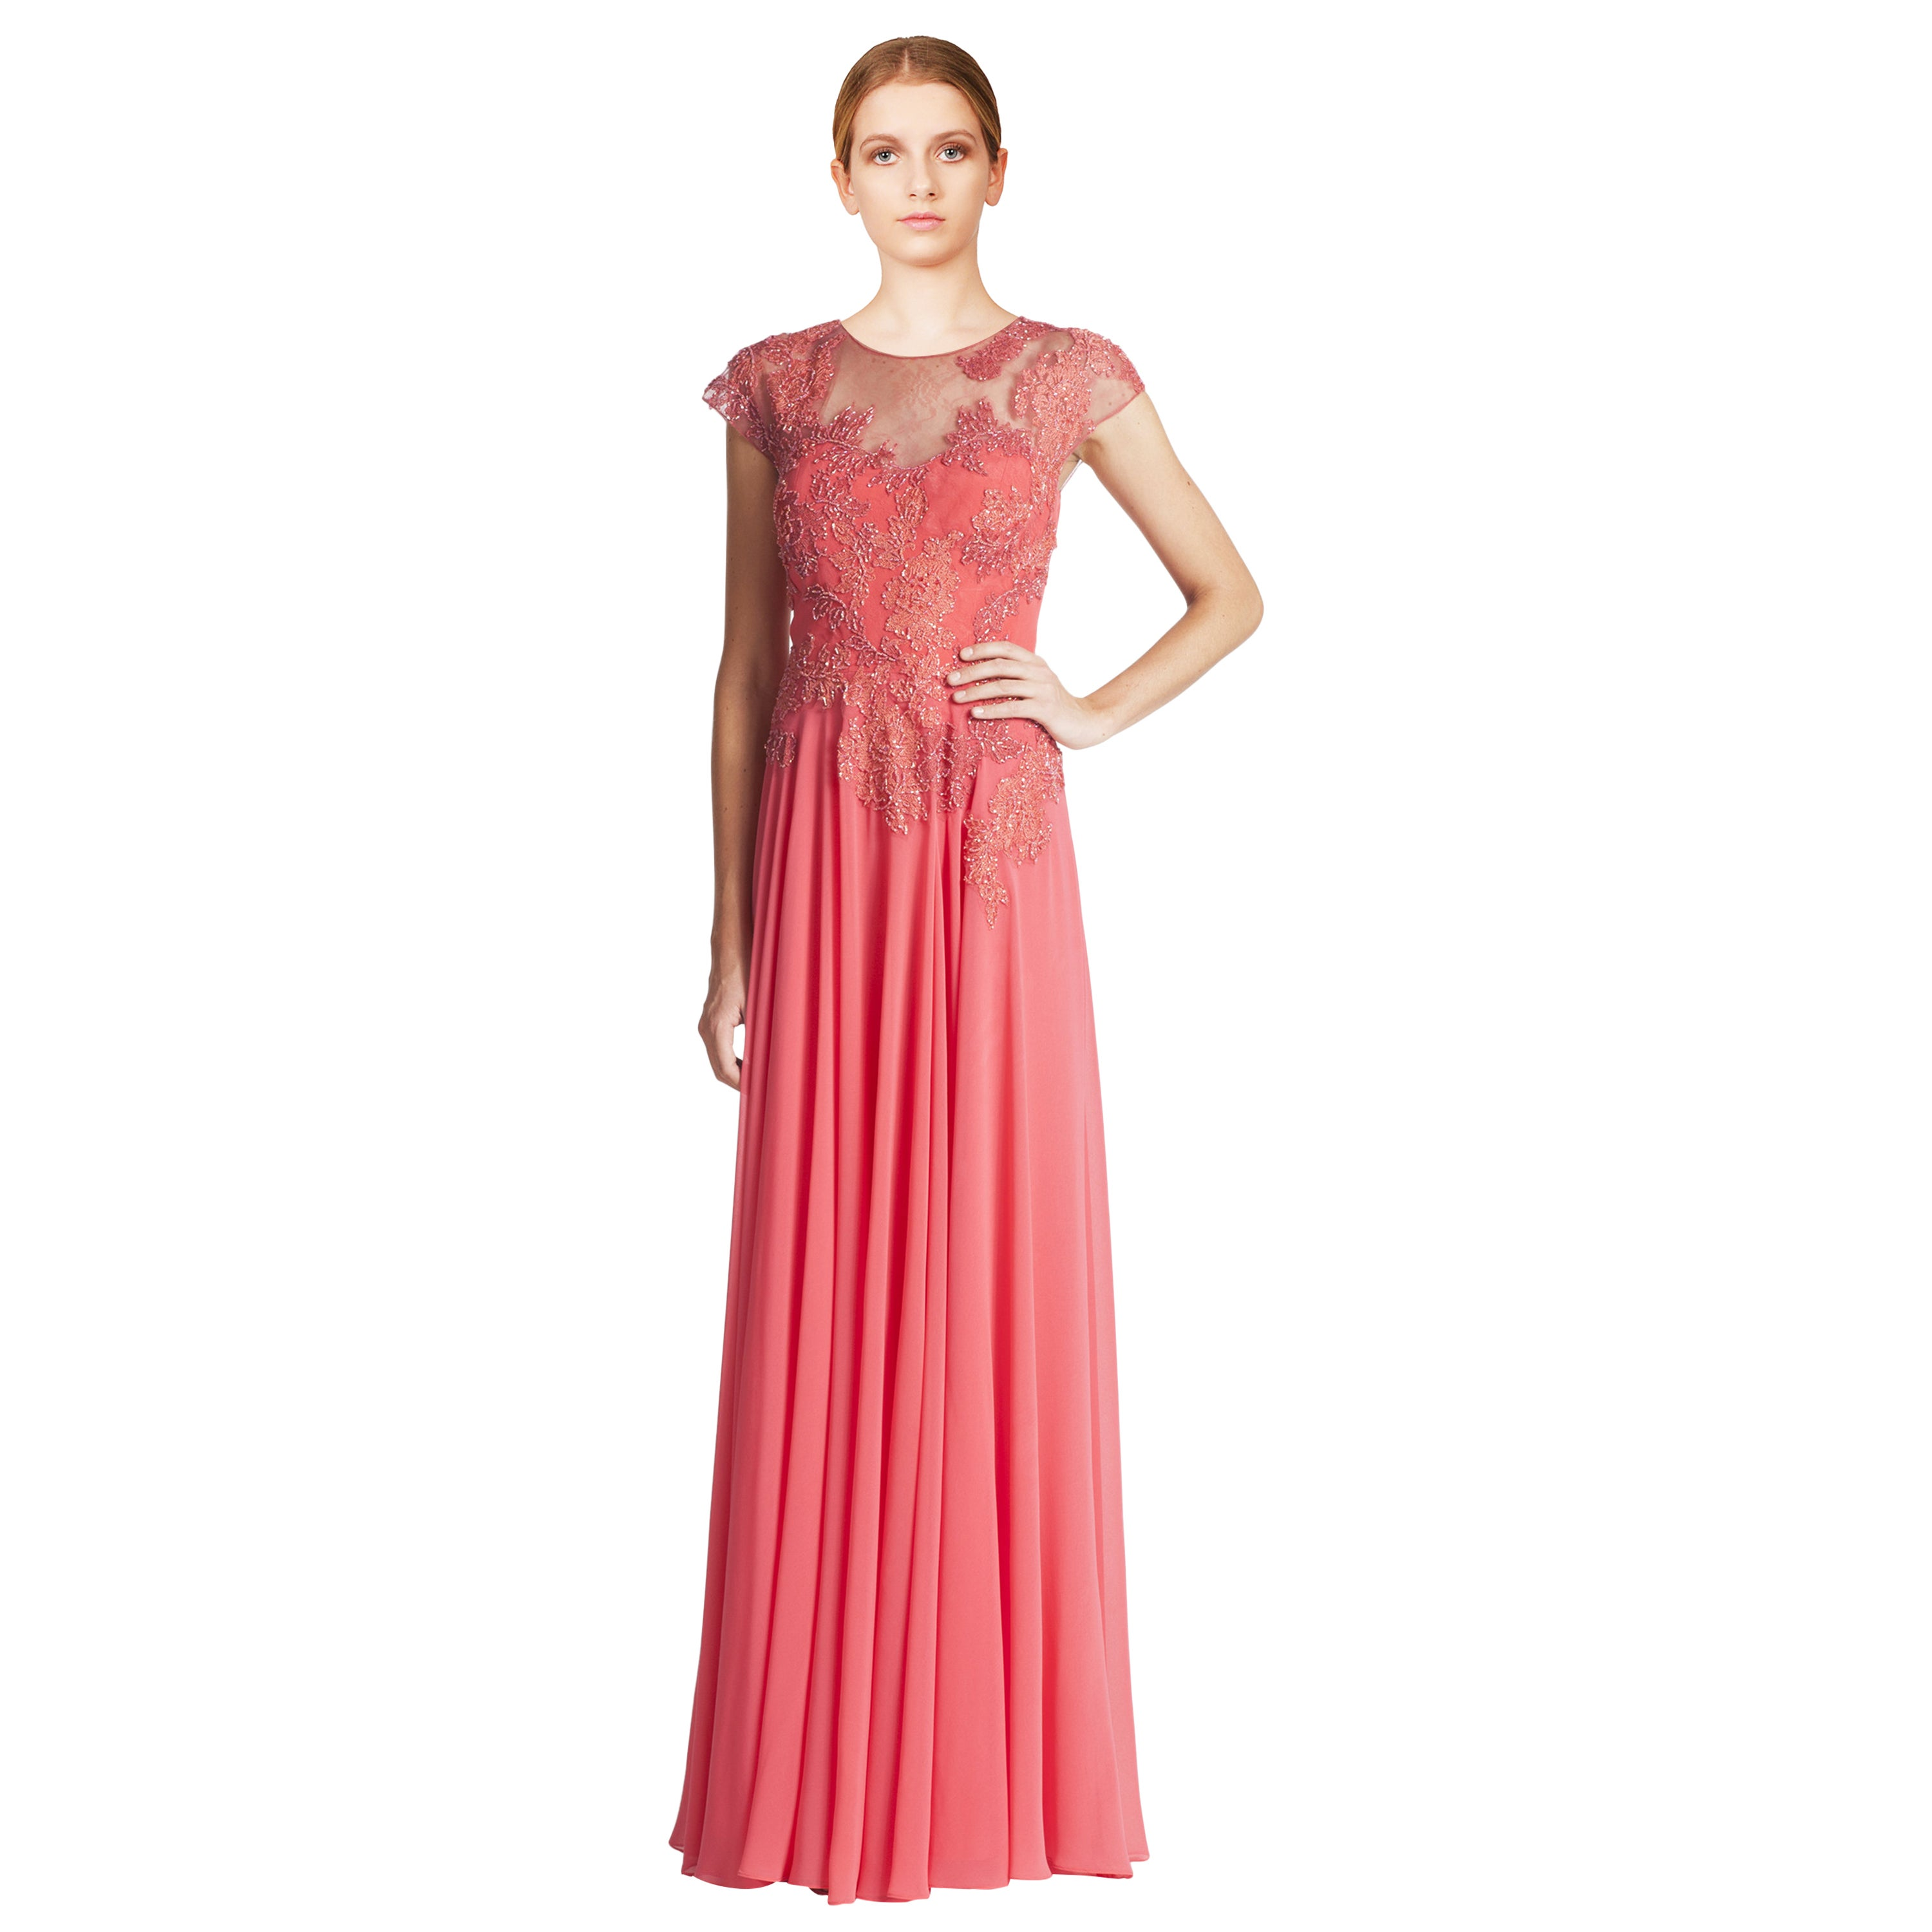 Teri Jon Coral Pink Beaded Lace Applique Cap Sleeve Evening Gown